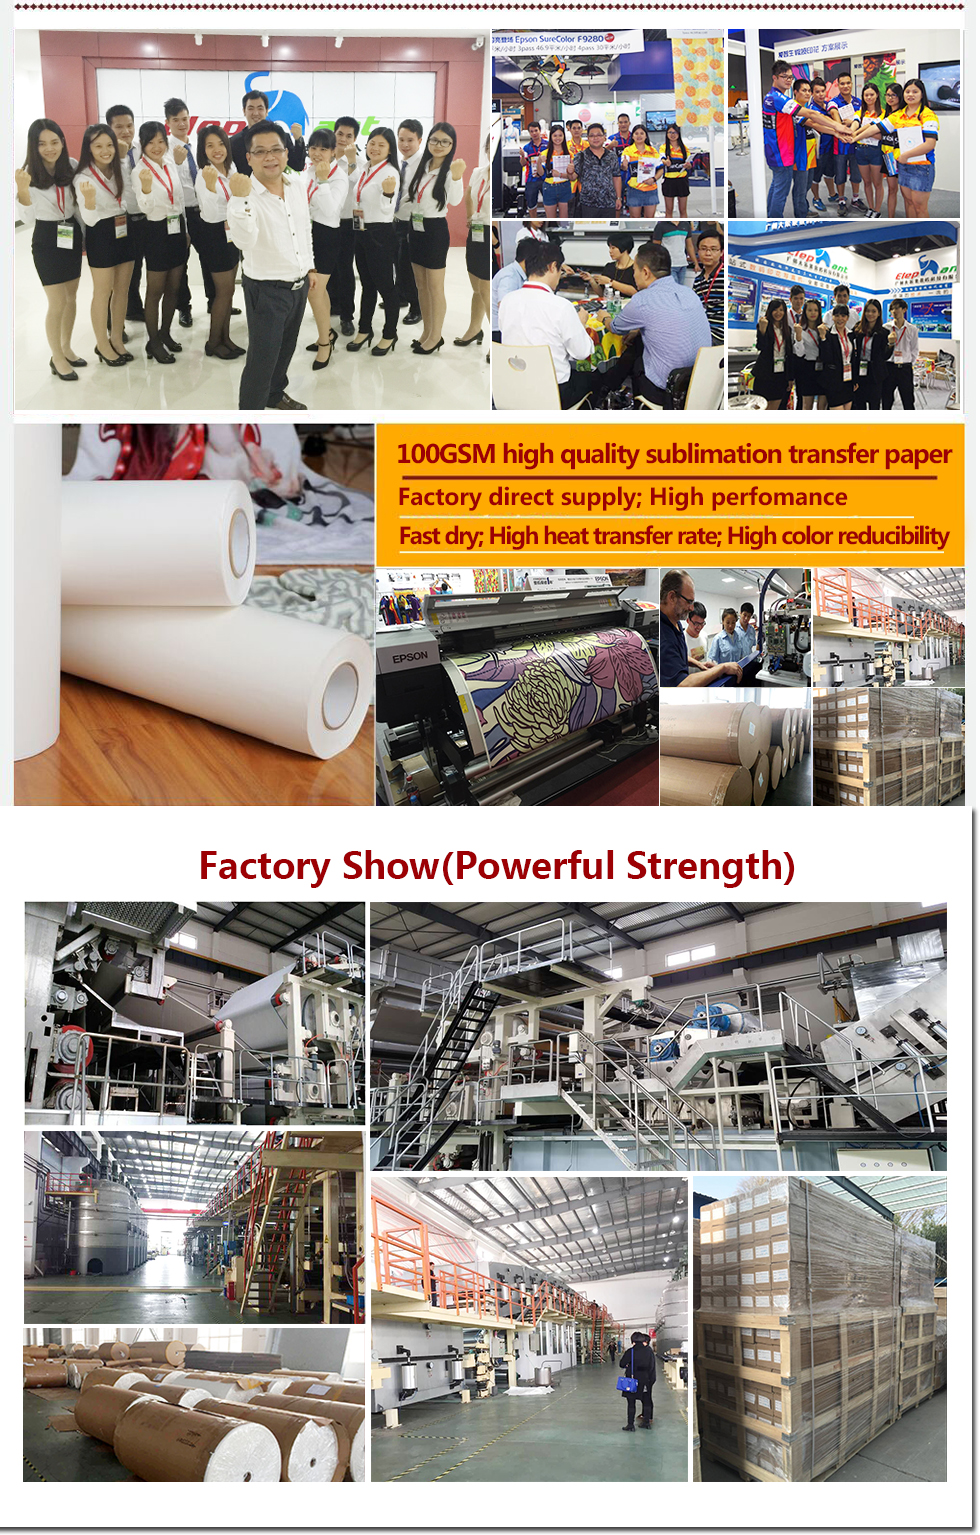 Factory show-Powerful strength.jpg